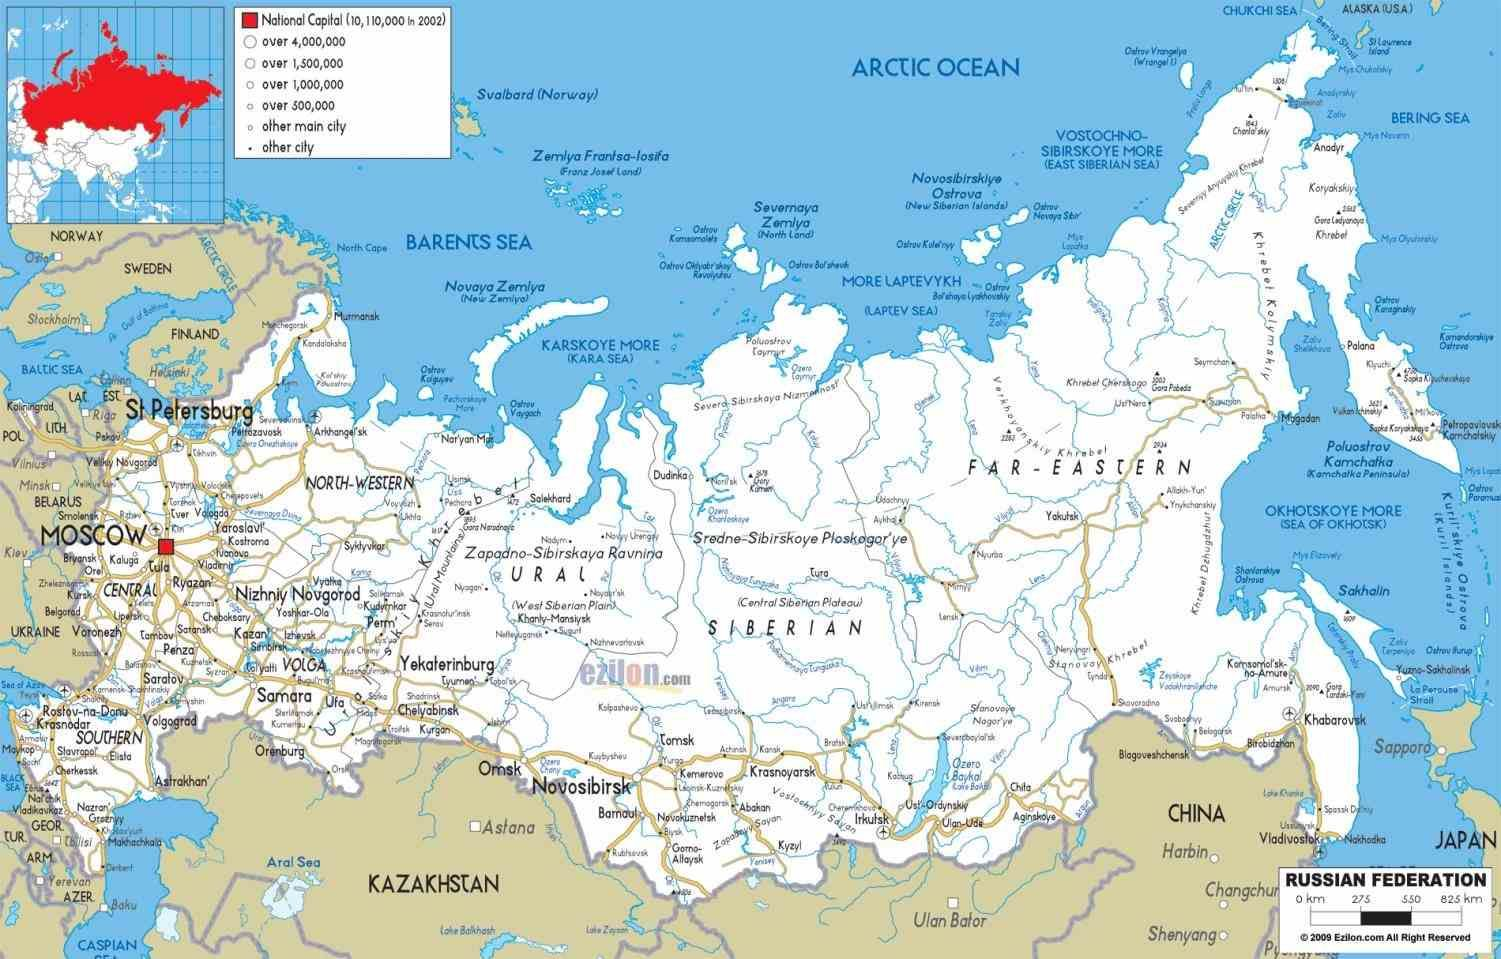 Zonesvg Wikimedia Commons File Yekaterinburg Russia Map Of Time